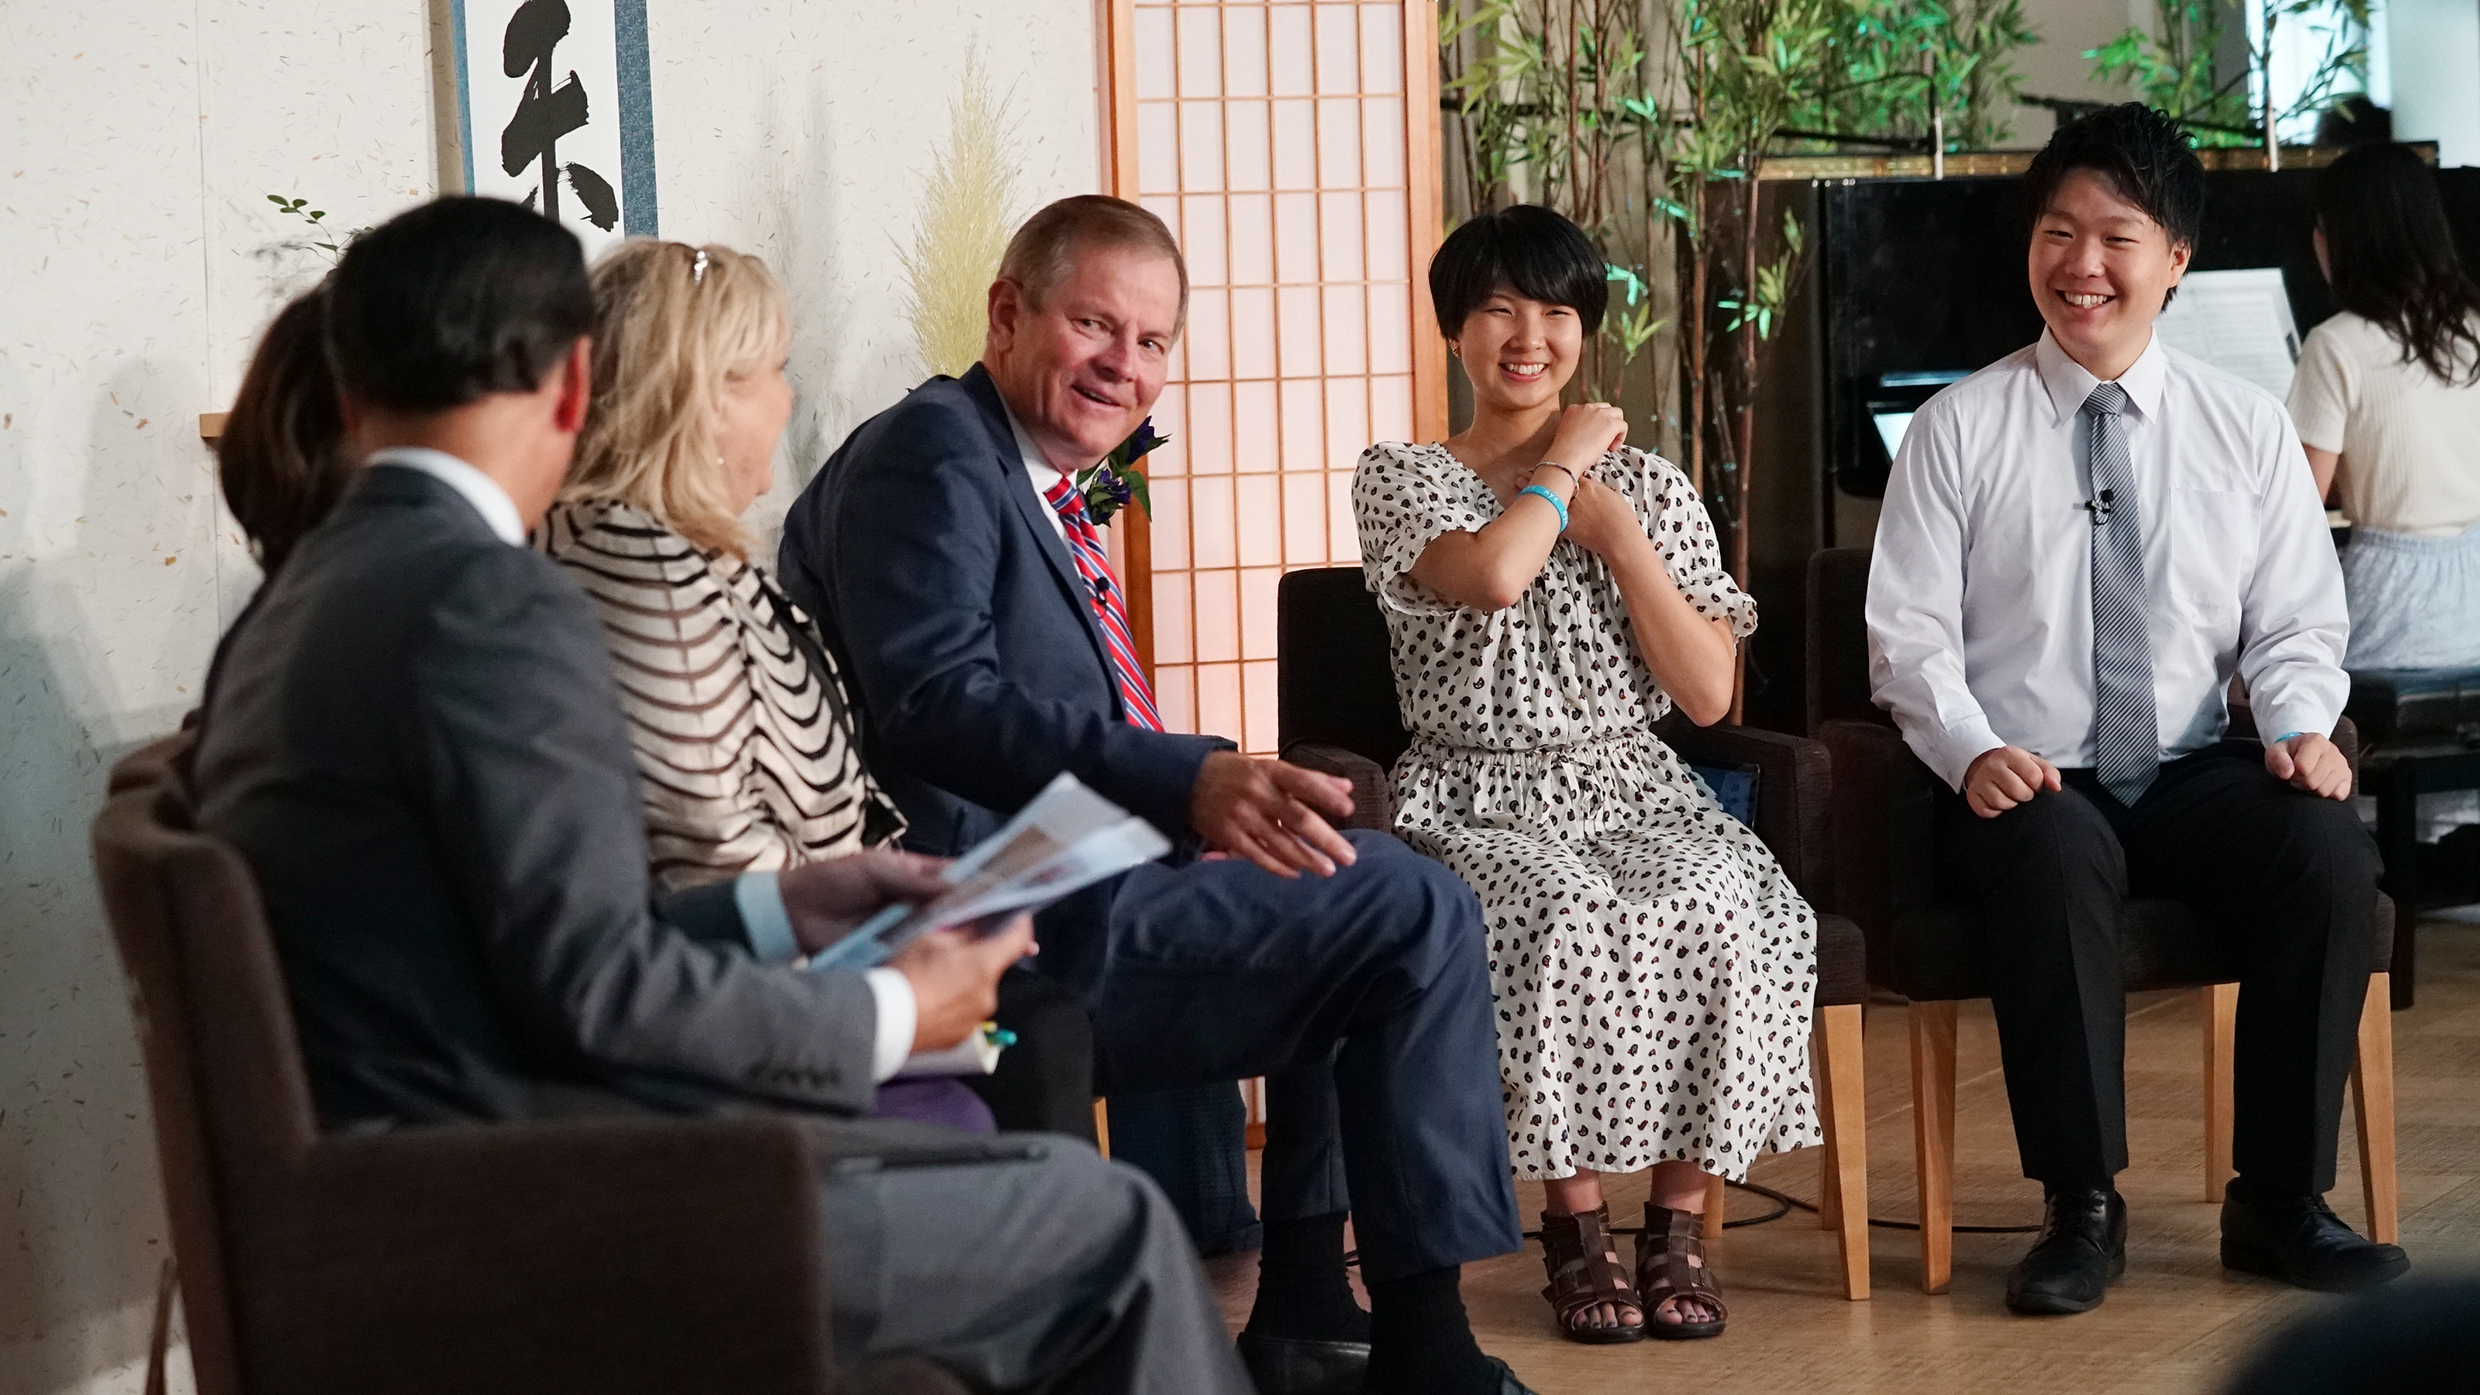 From left, Elder Kazuhiko Yamashita, General Authority Seventy, and his wife, Sister Tazuko Yamashita; Sister Lesa Stevenson and Elder Gary E. Stevenson, of the Quorum of the Twelve Apostles; and the two youth hosts, Miyu Nakiatania and Mashahiro Yoshikawa, during the Face to Face event held in Japan on Aug. 14.